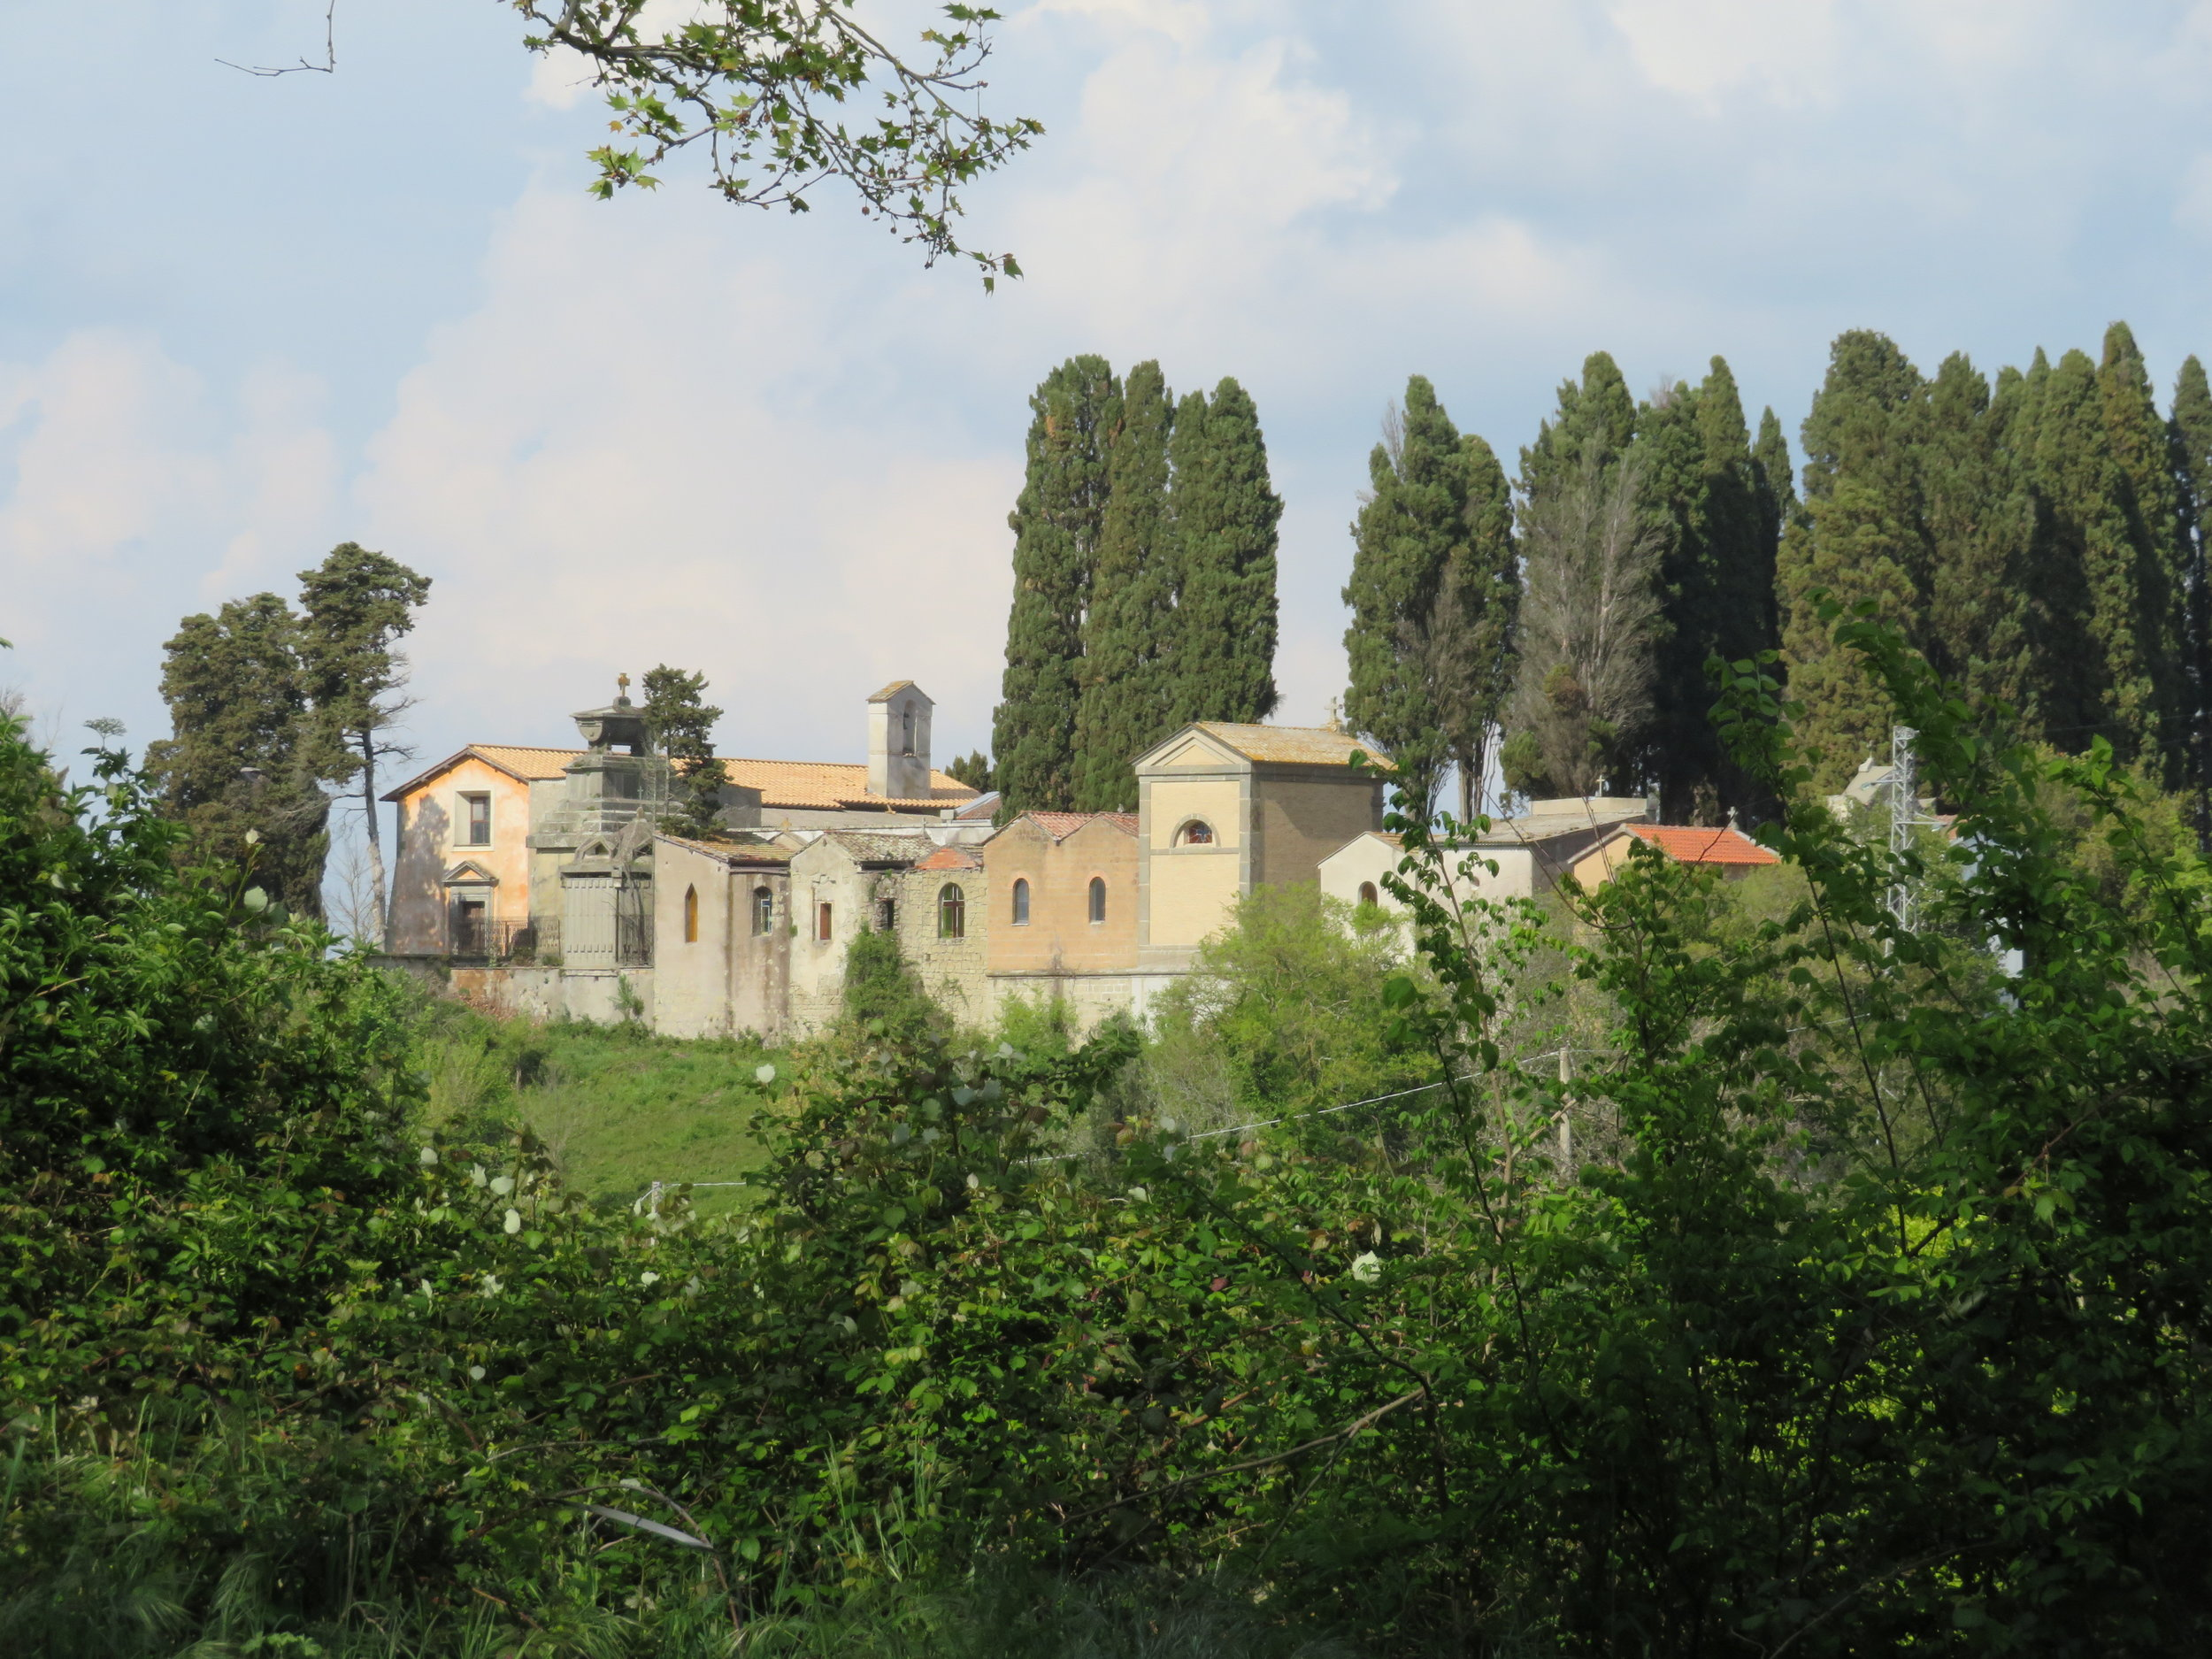 At last, the outskirts of Campagnano di Roma in the distance.